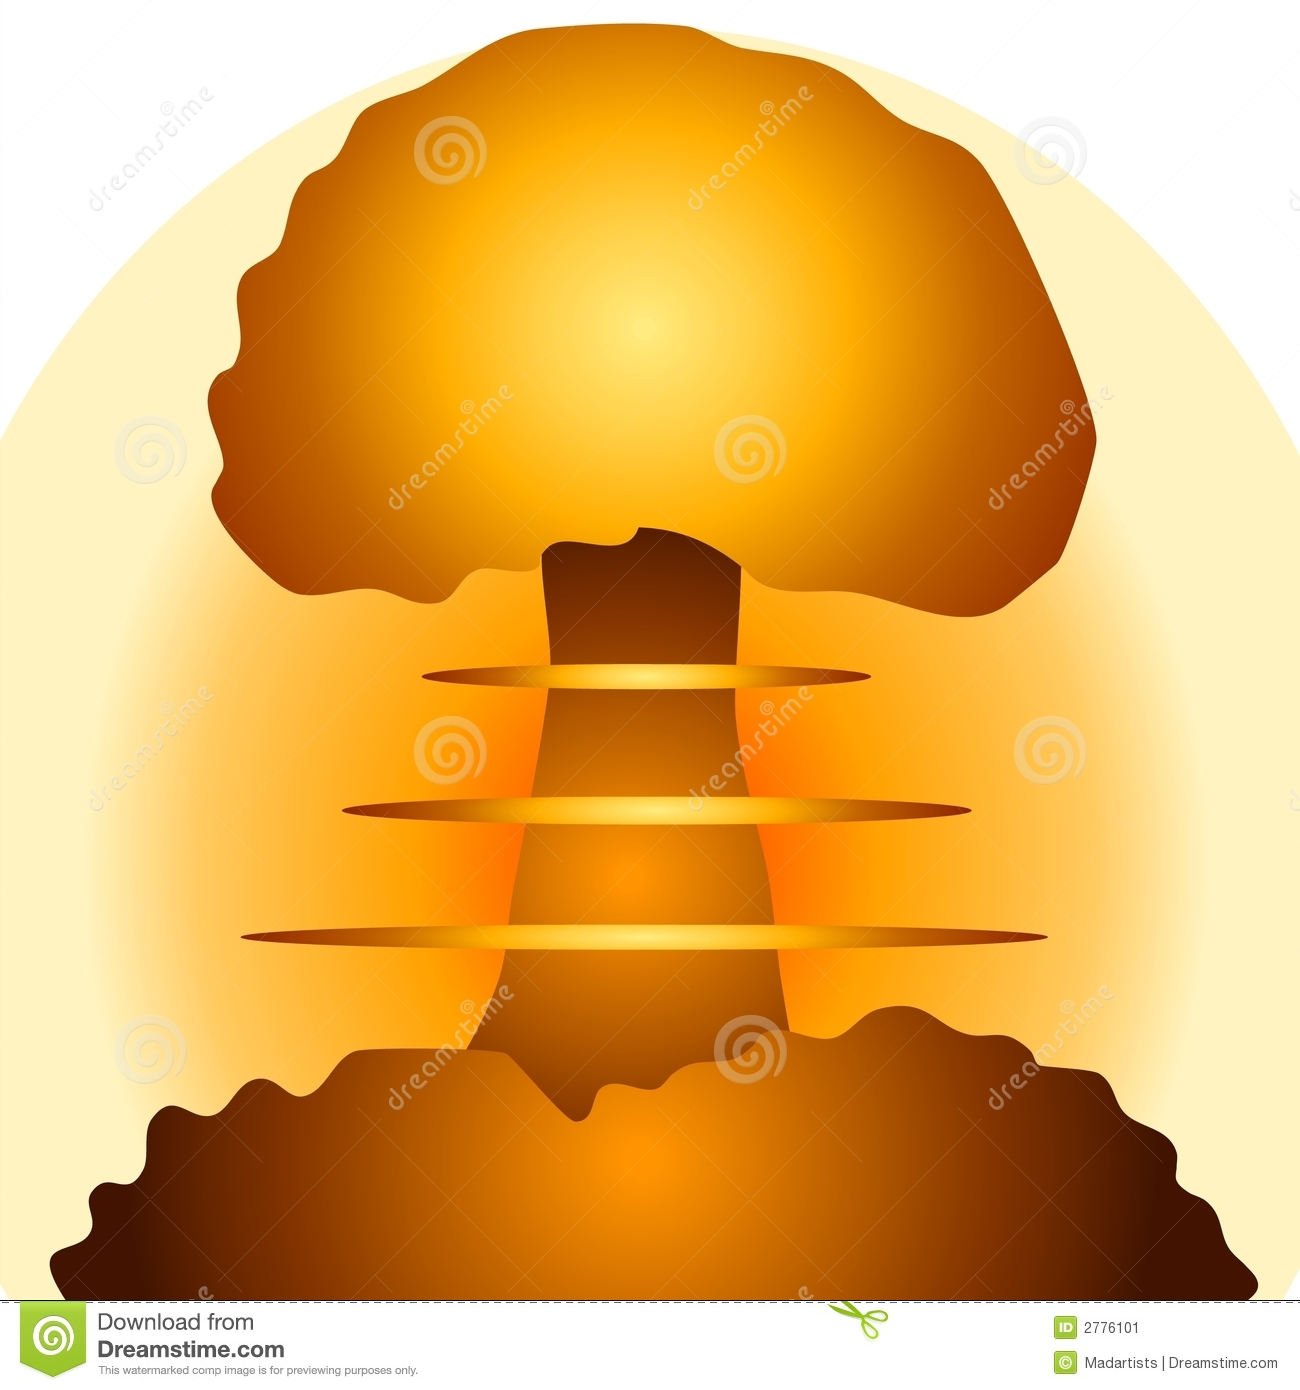 Mushroom cloud clipart no backround.